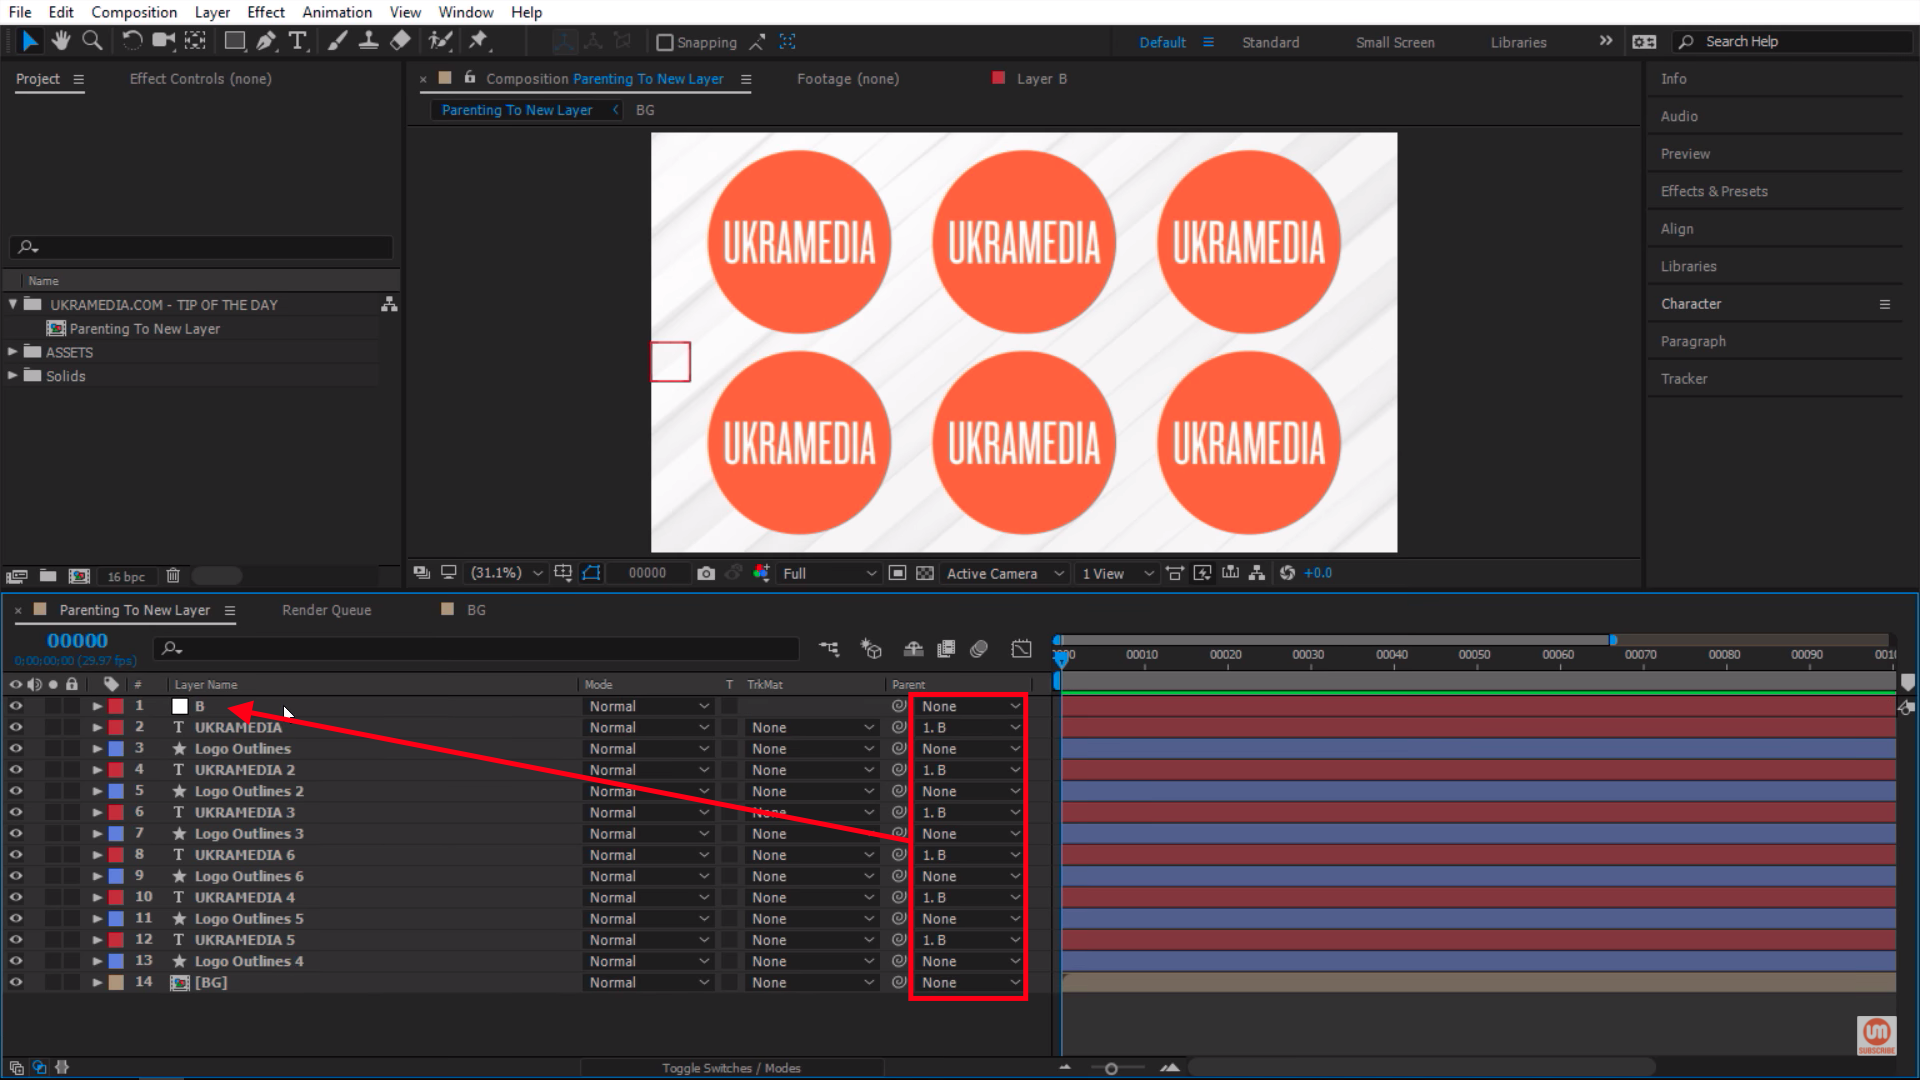 Everything switched to letter B in After Effects